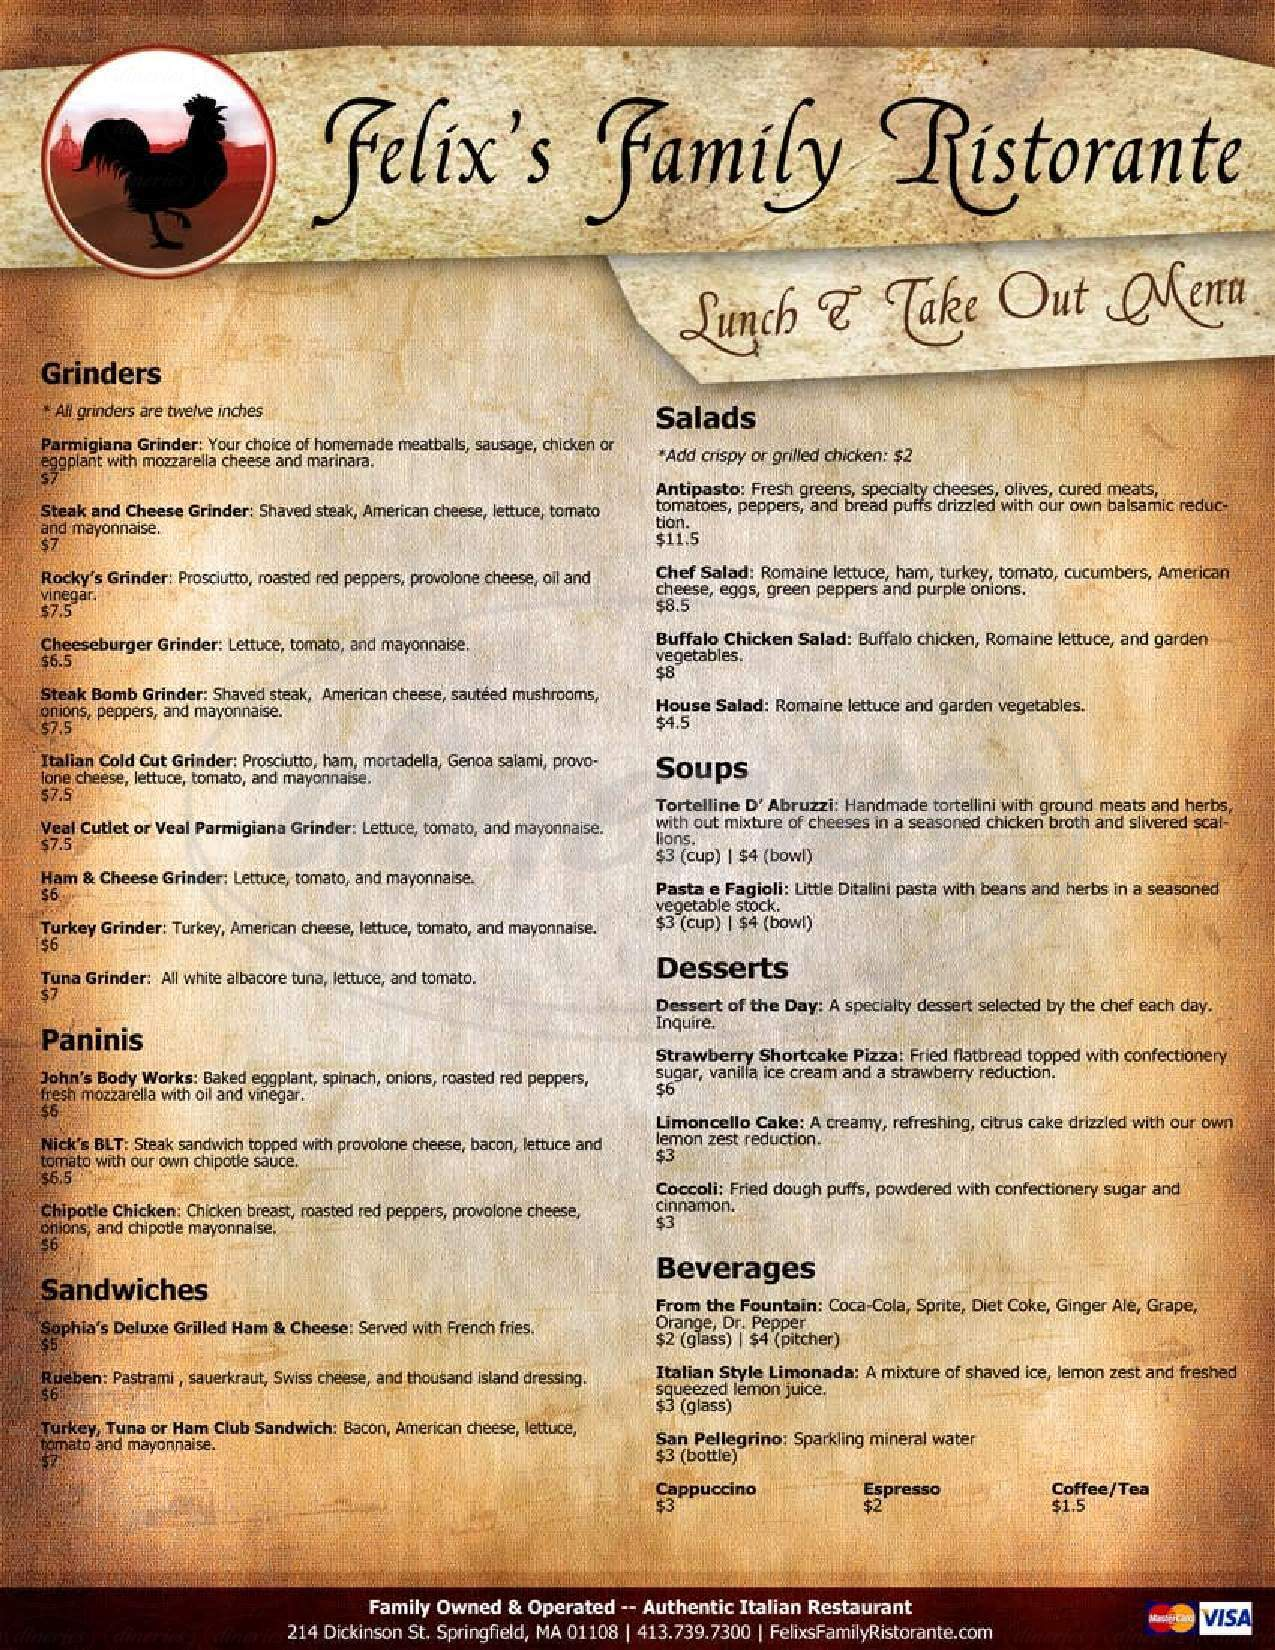 menu for Felix's Family Ristorante